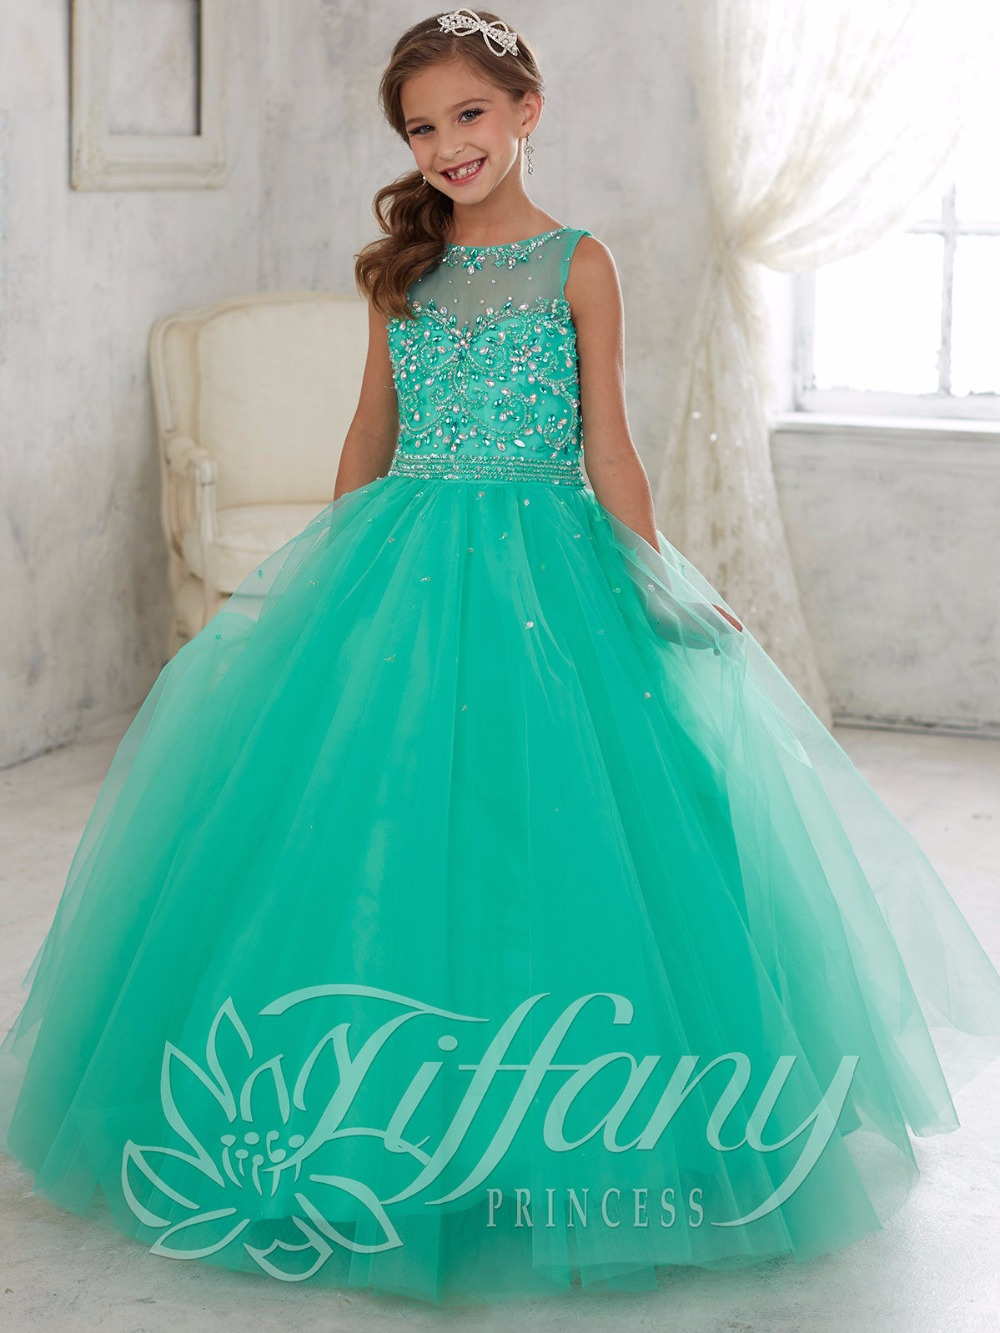 11 Year Old Formal Dresses | Dress images